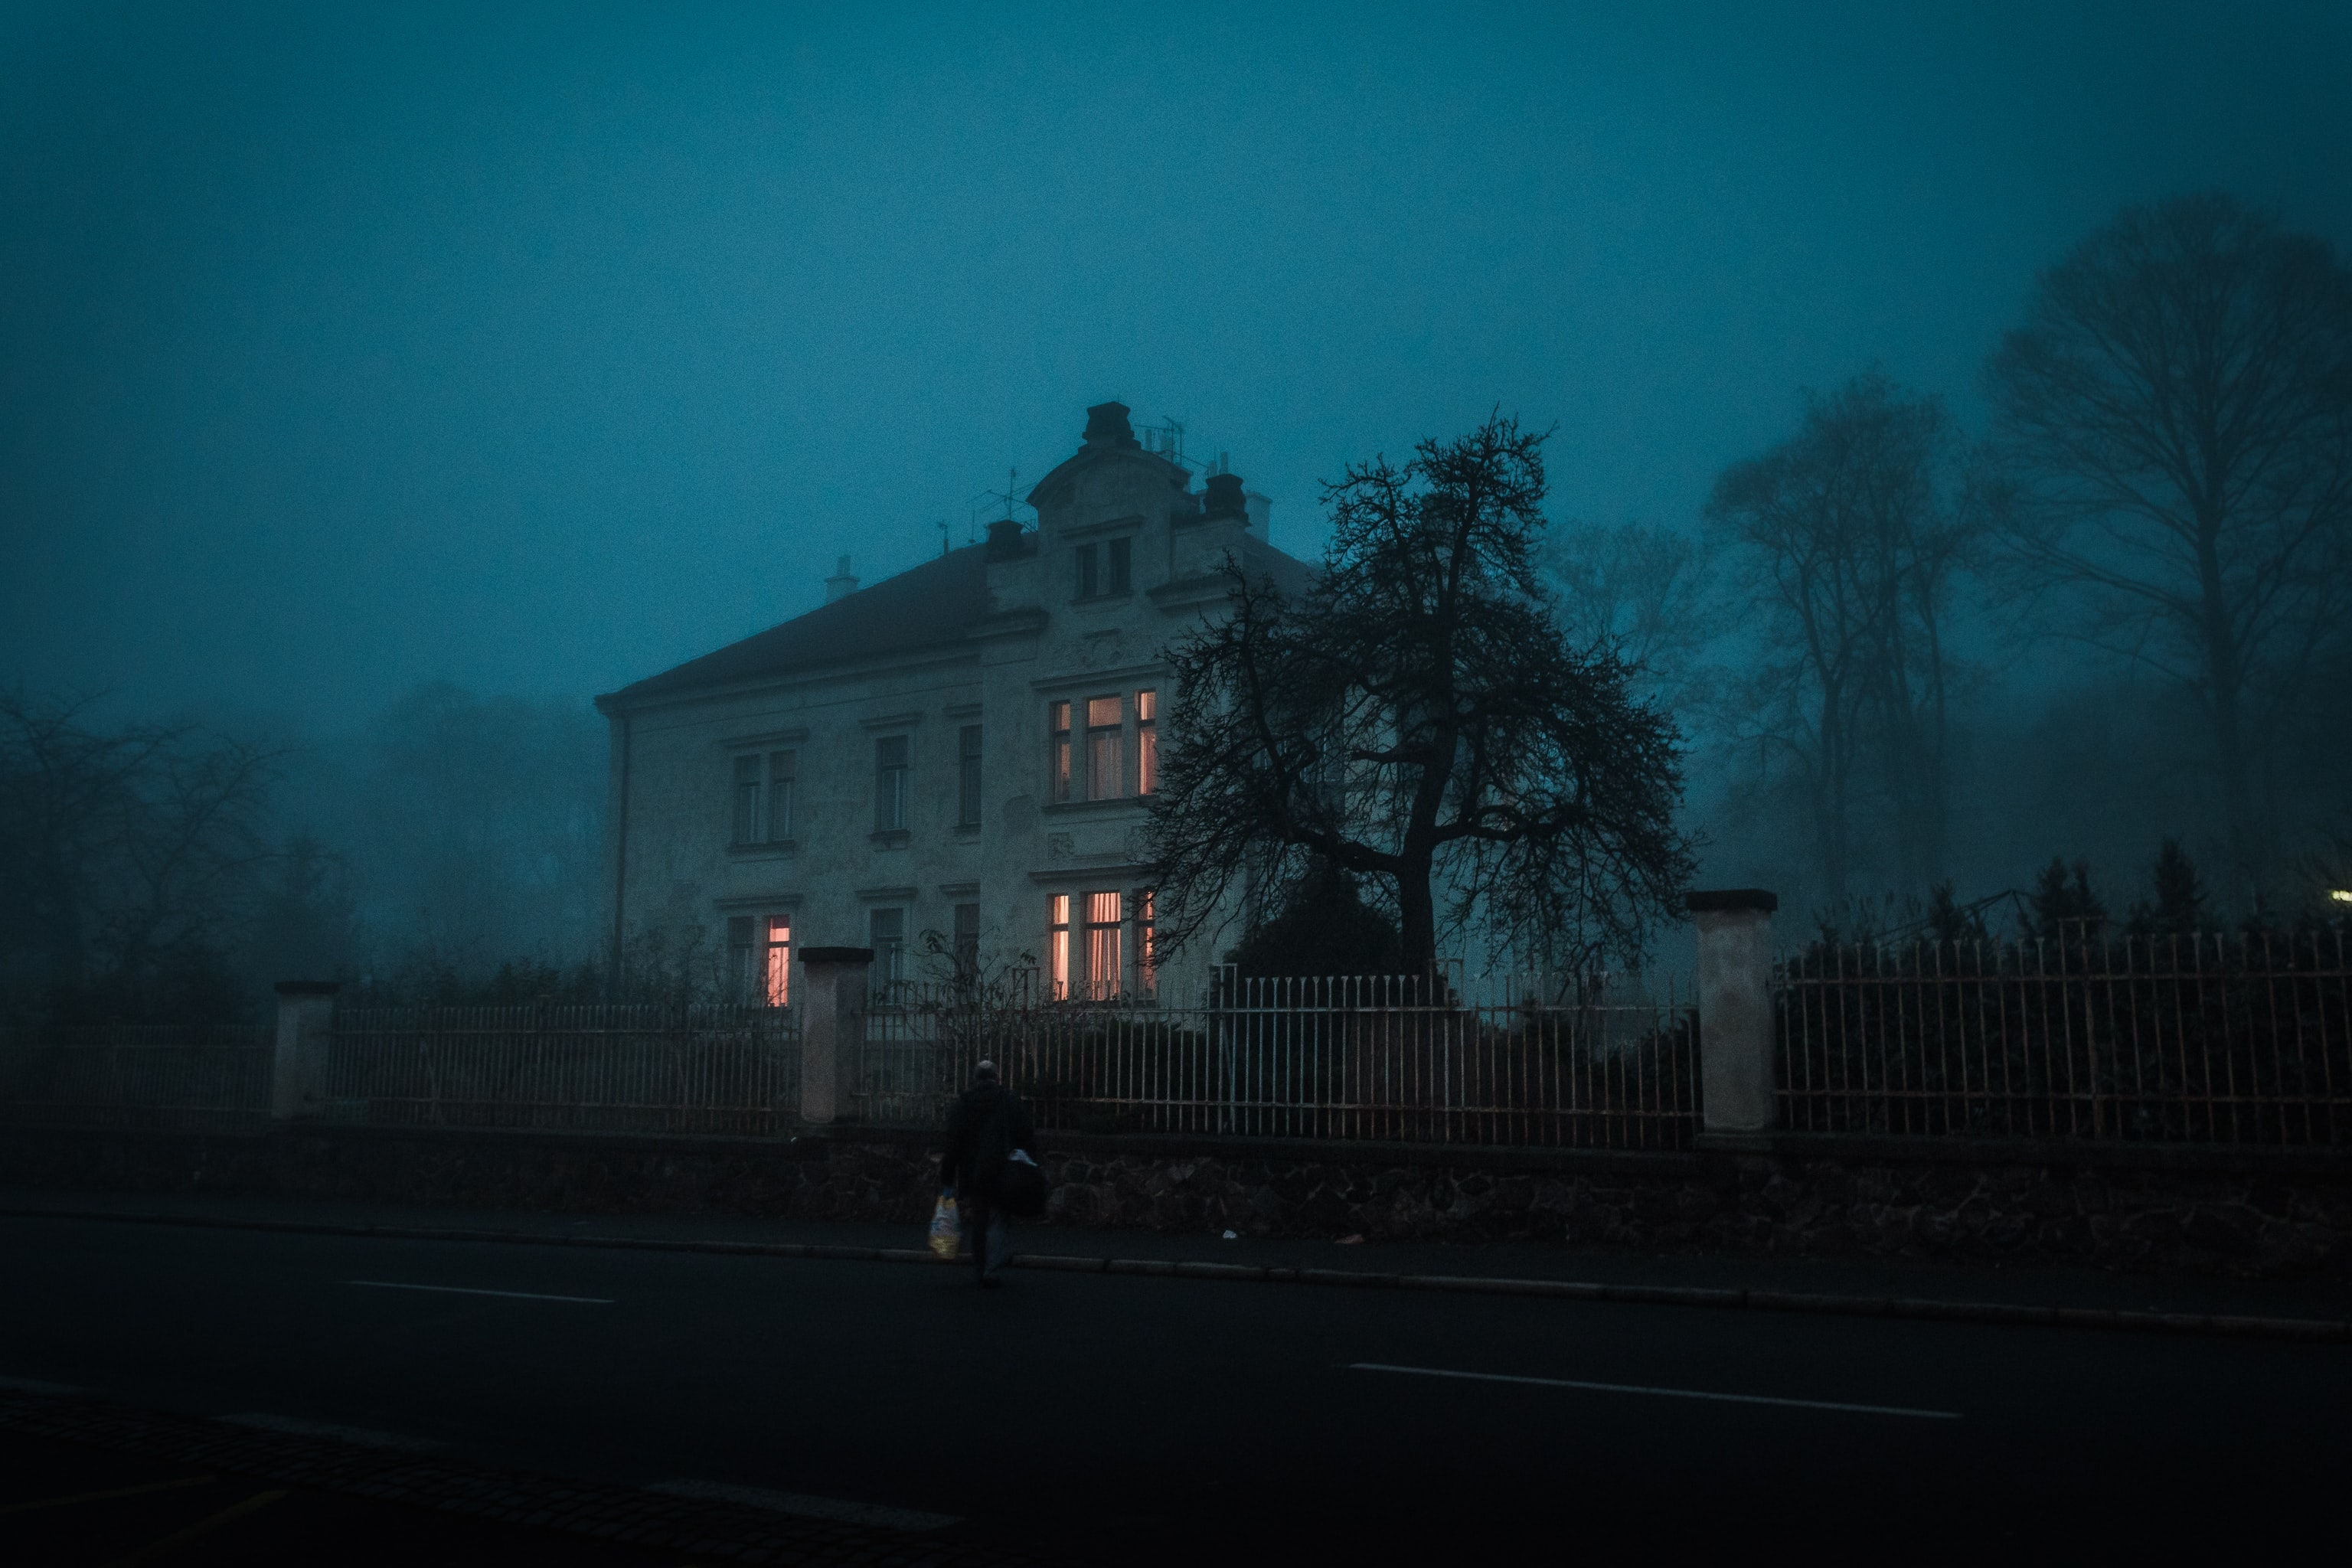 A person walking on a road with a scary mansion by the side in Psychiatrická nemocnice Bohunice